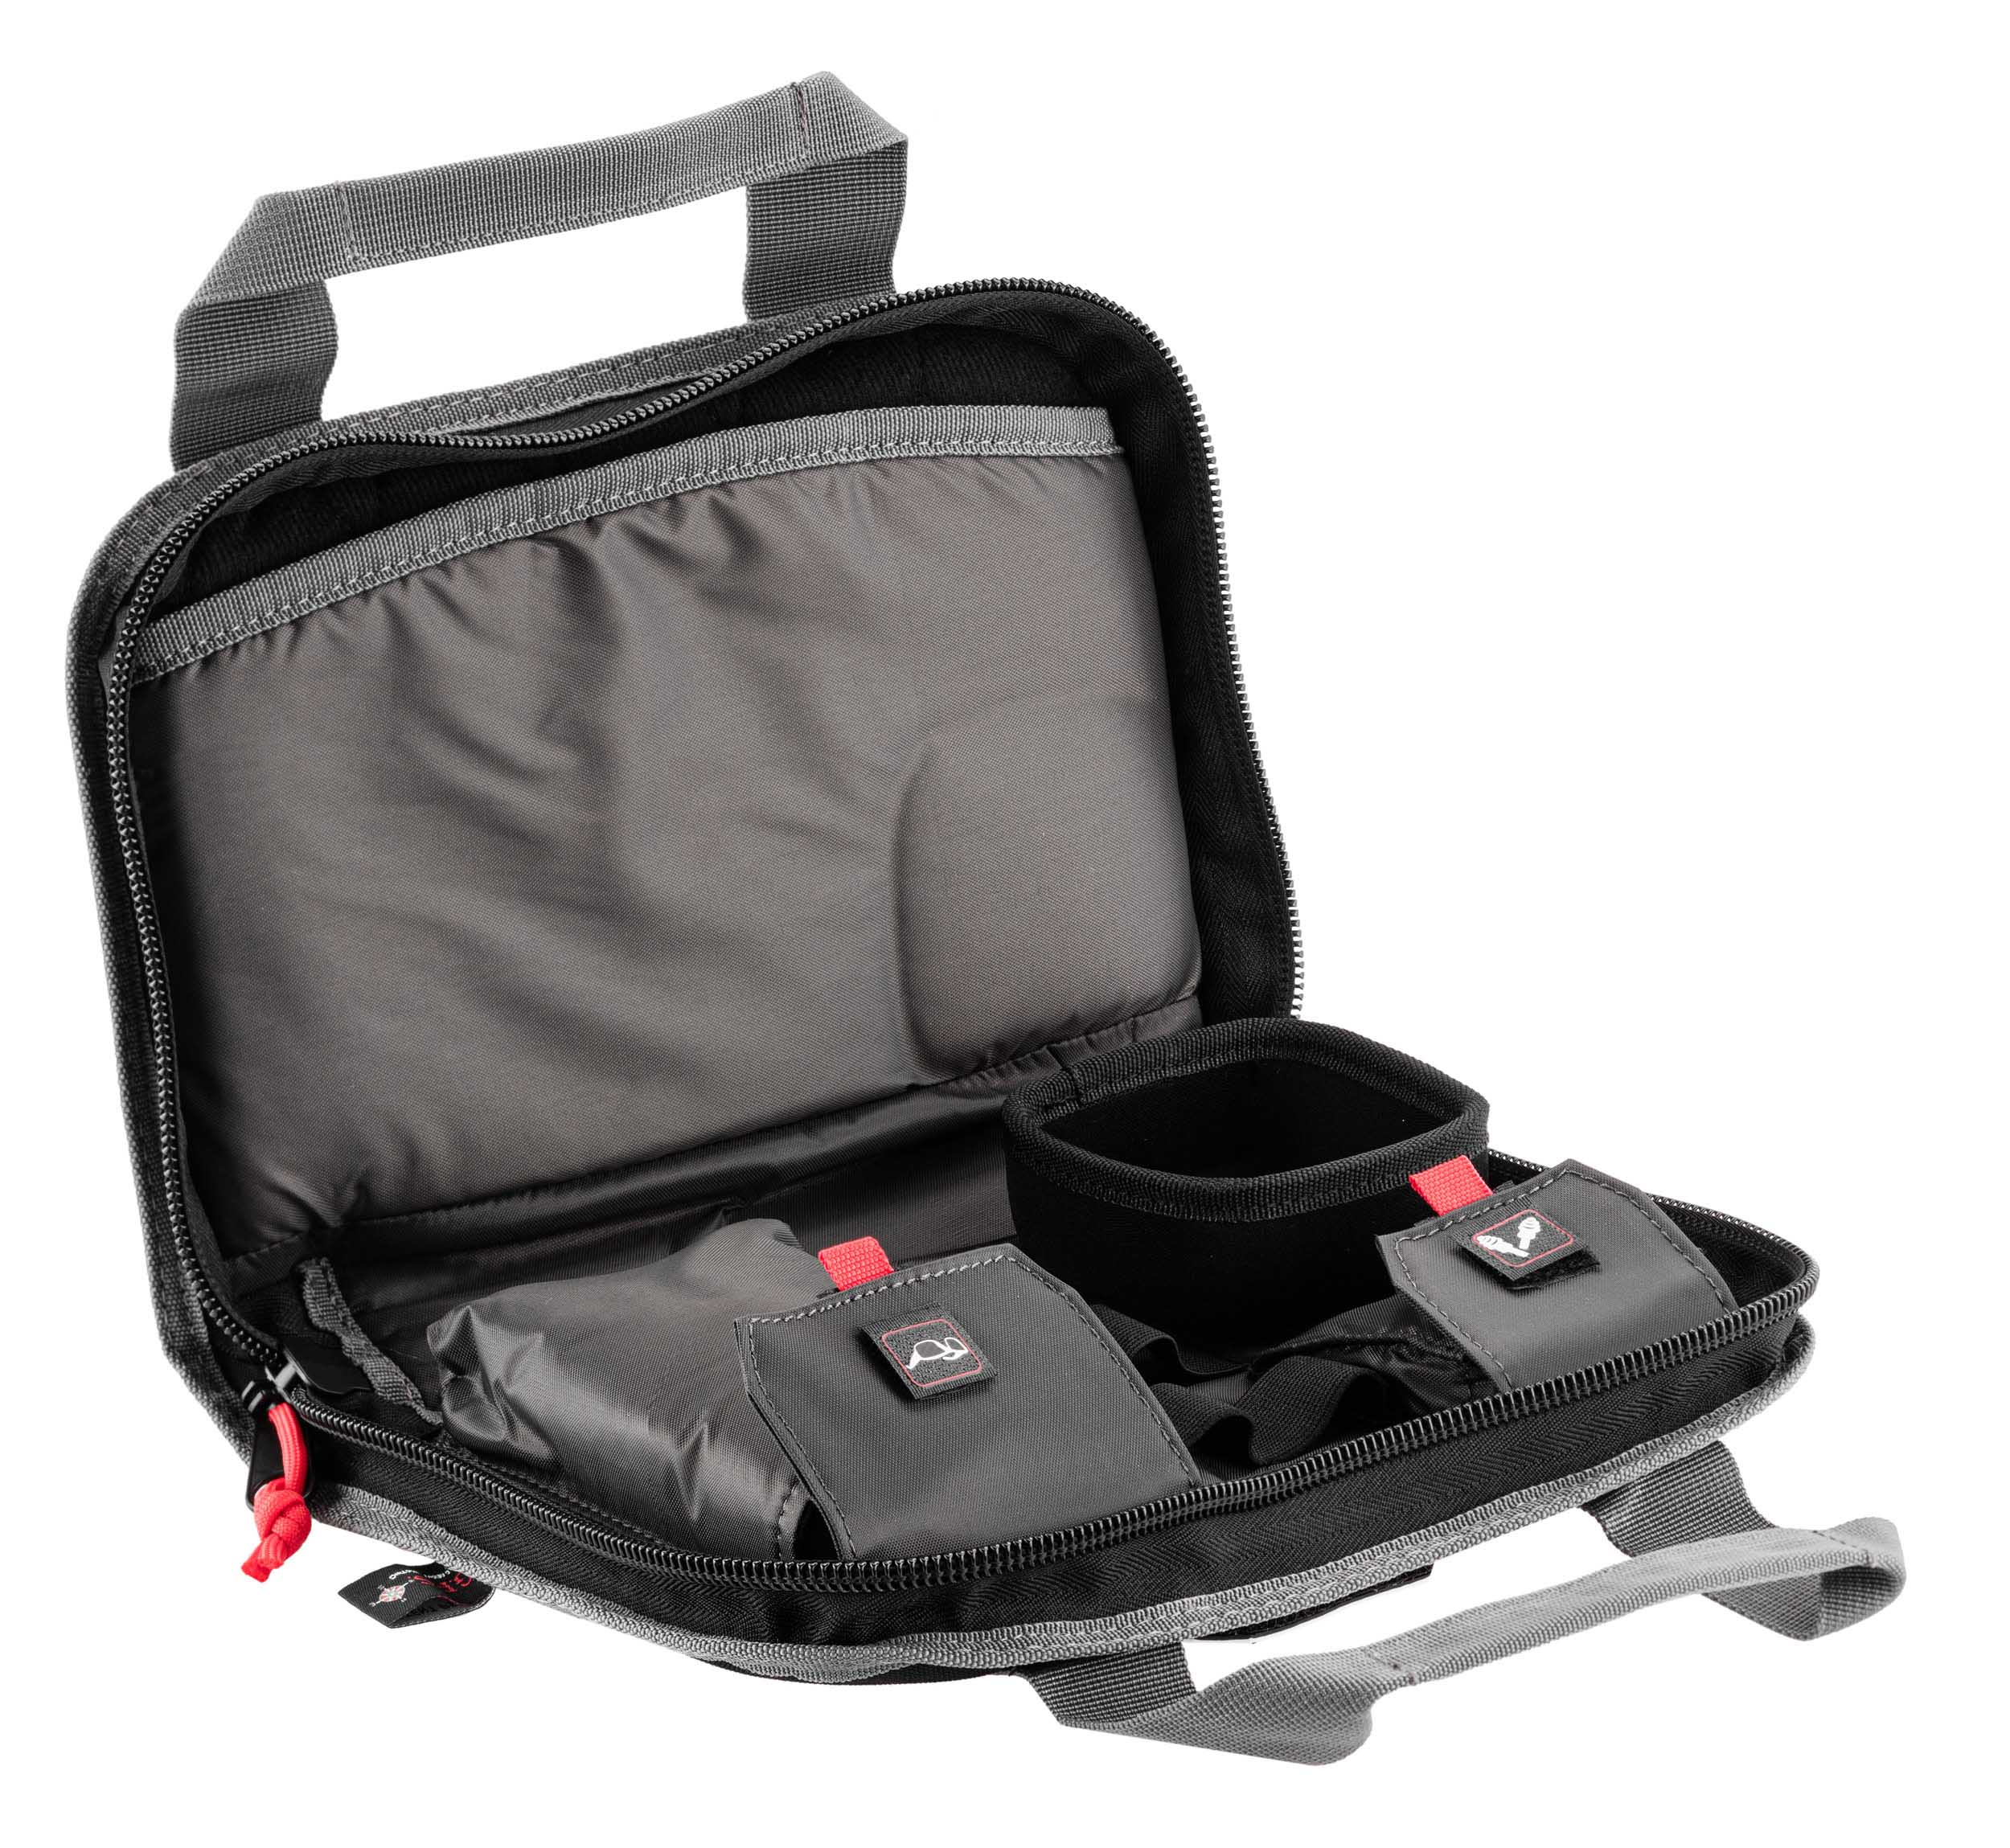 GPS160-2 Sac transport double arme de poing G OUTDOORS - GPS160